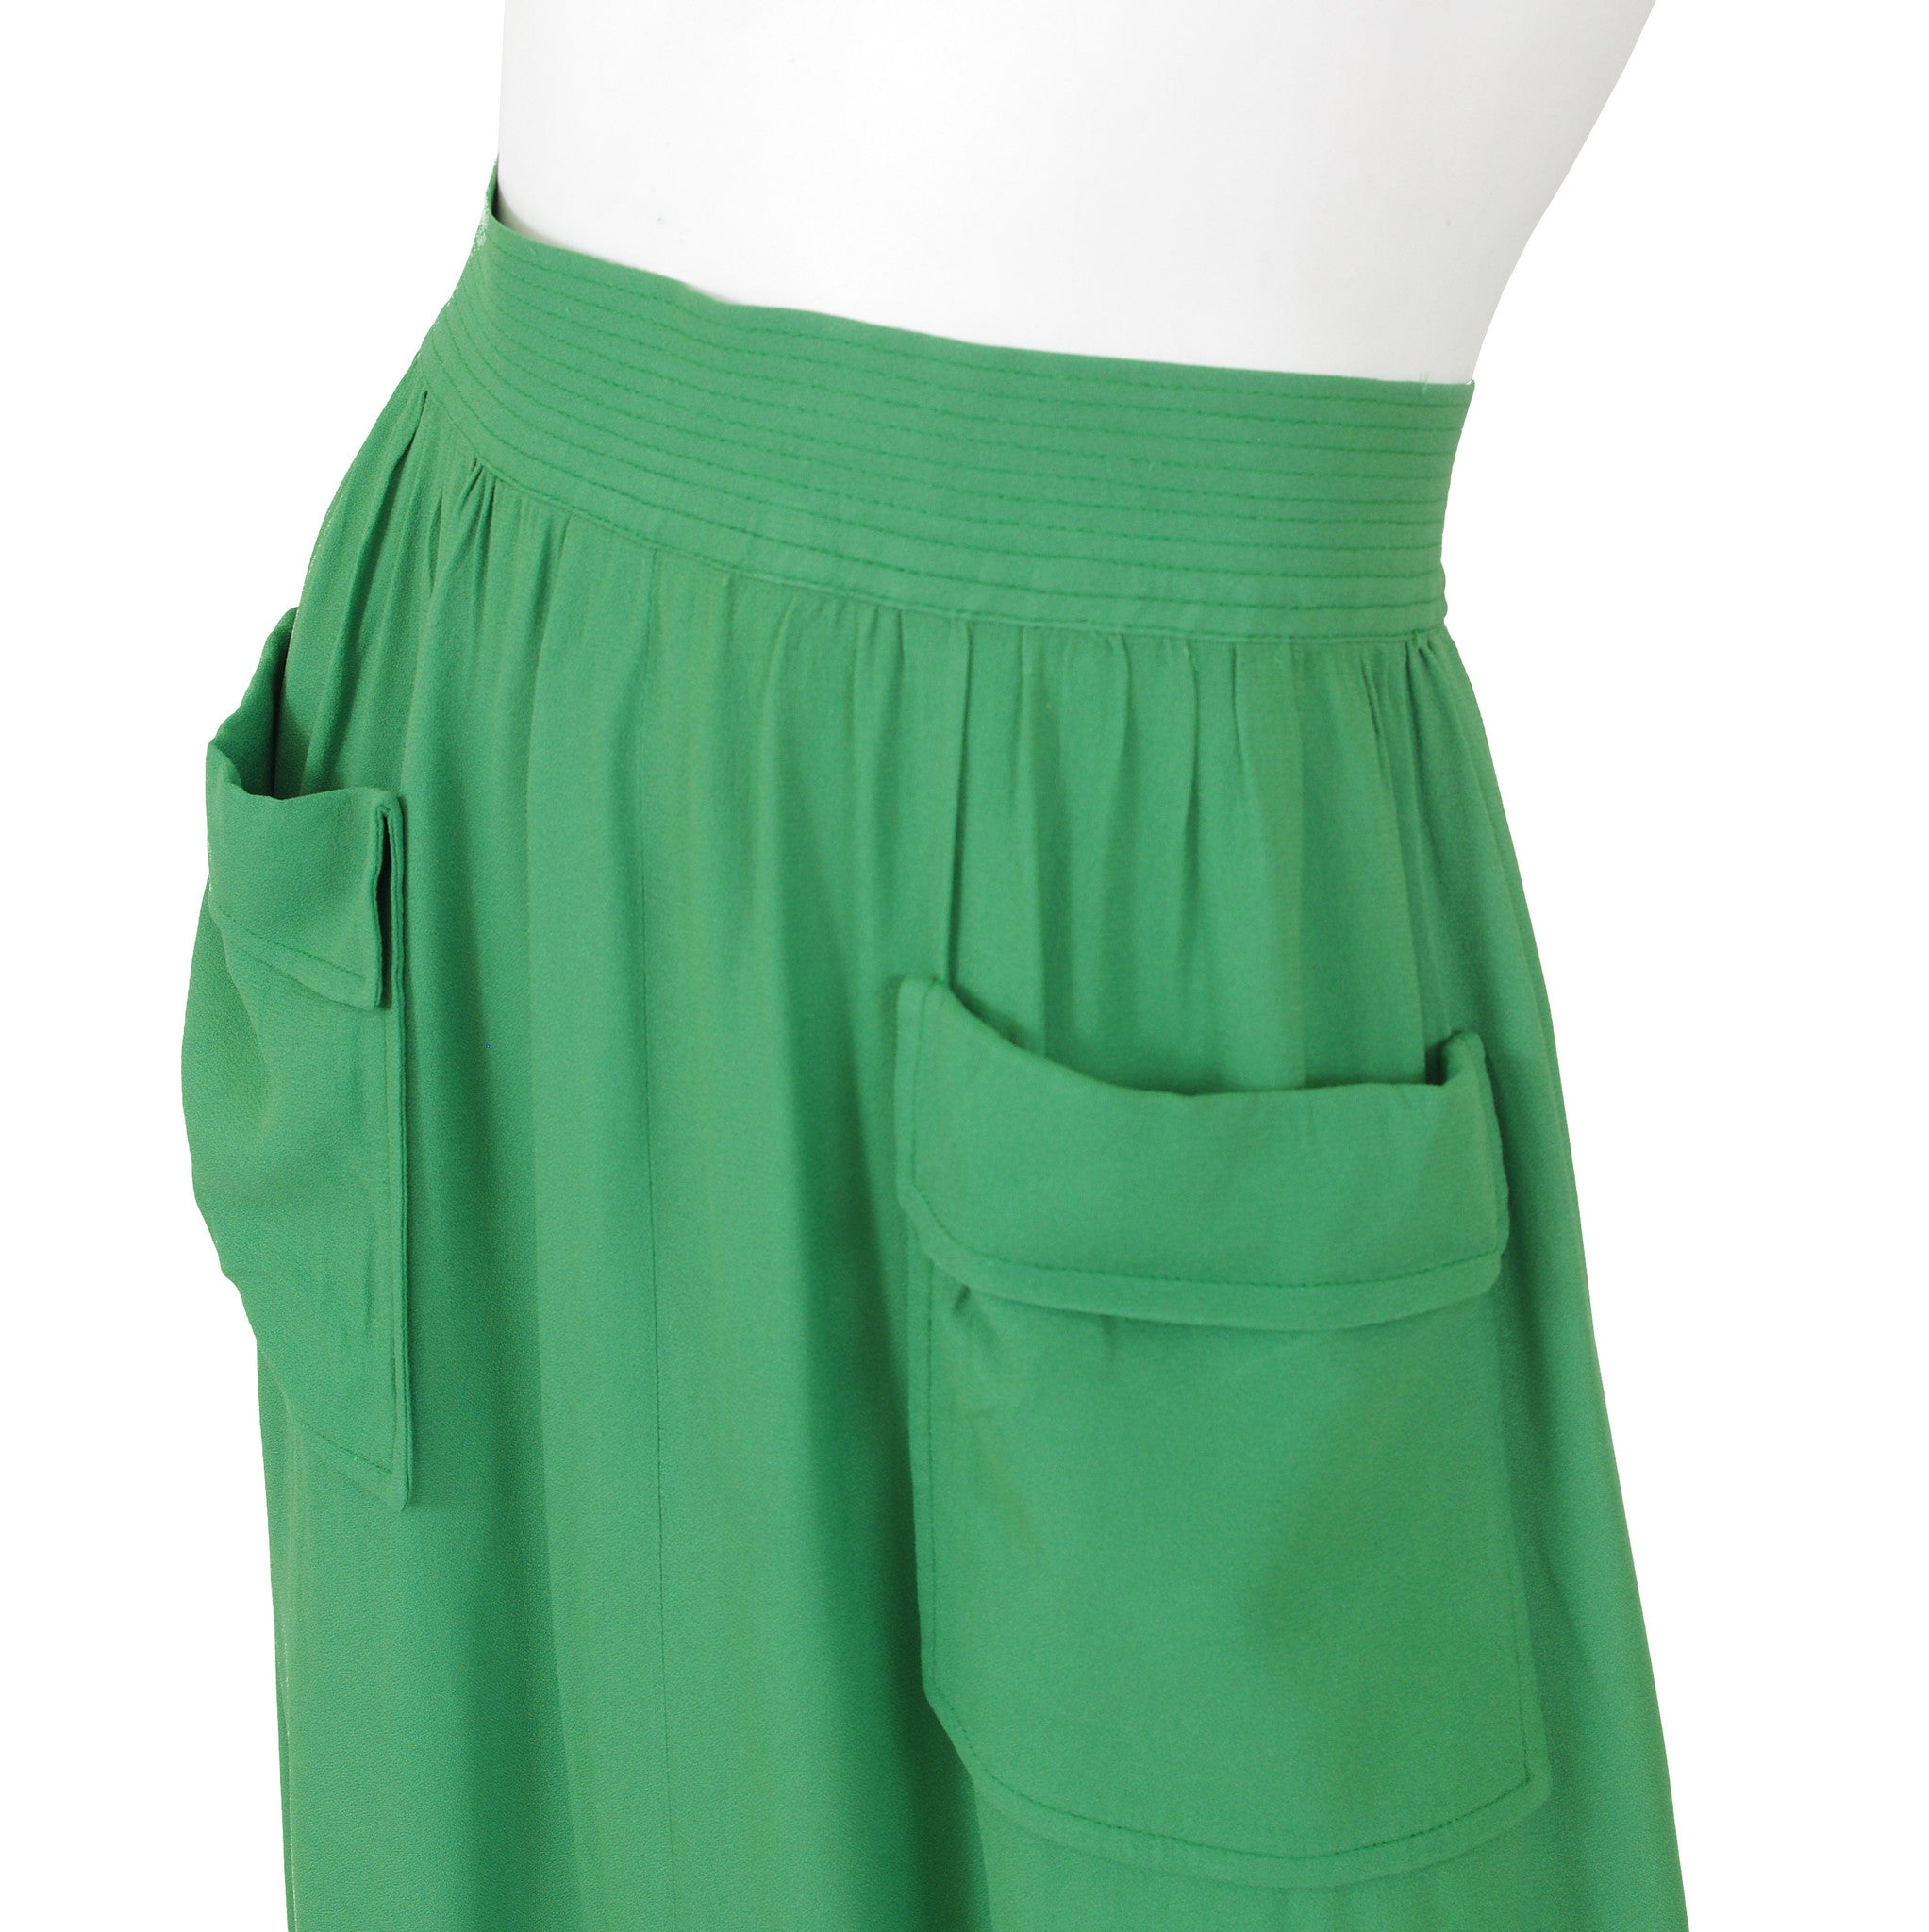 Early 1970s Green Crepe Maxi Skirt